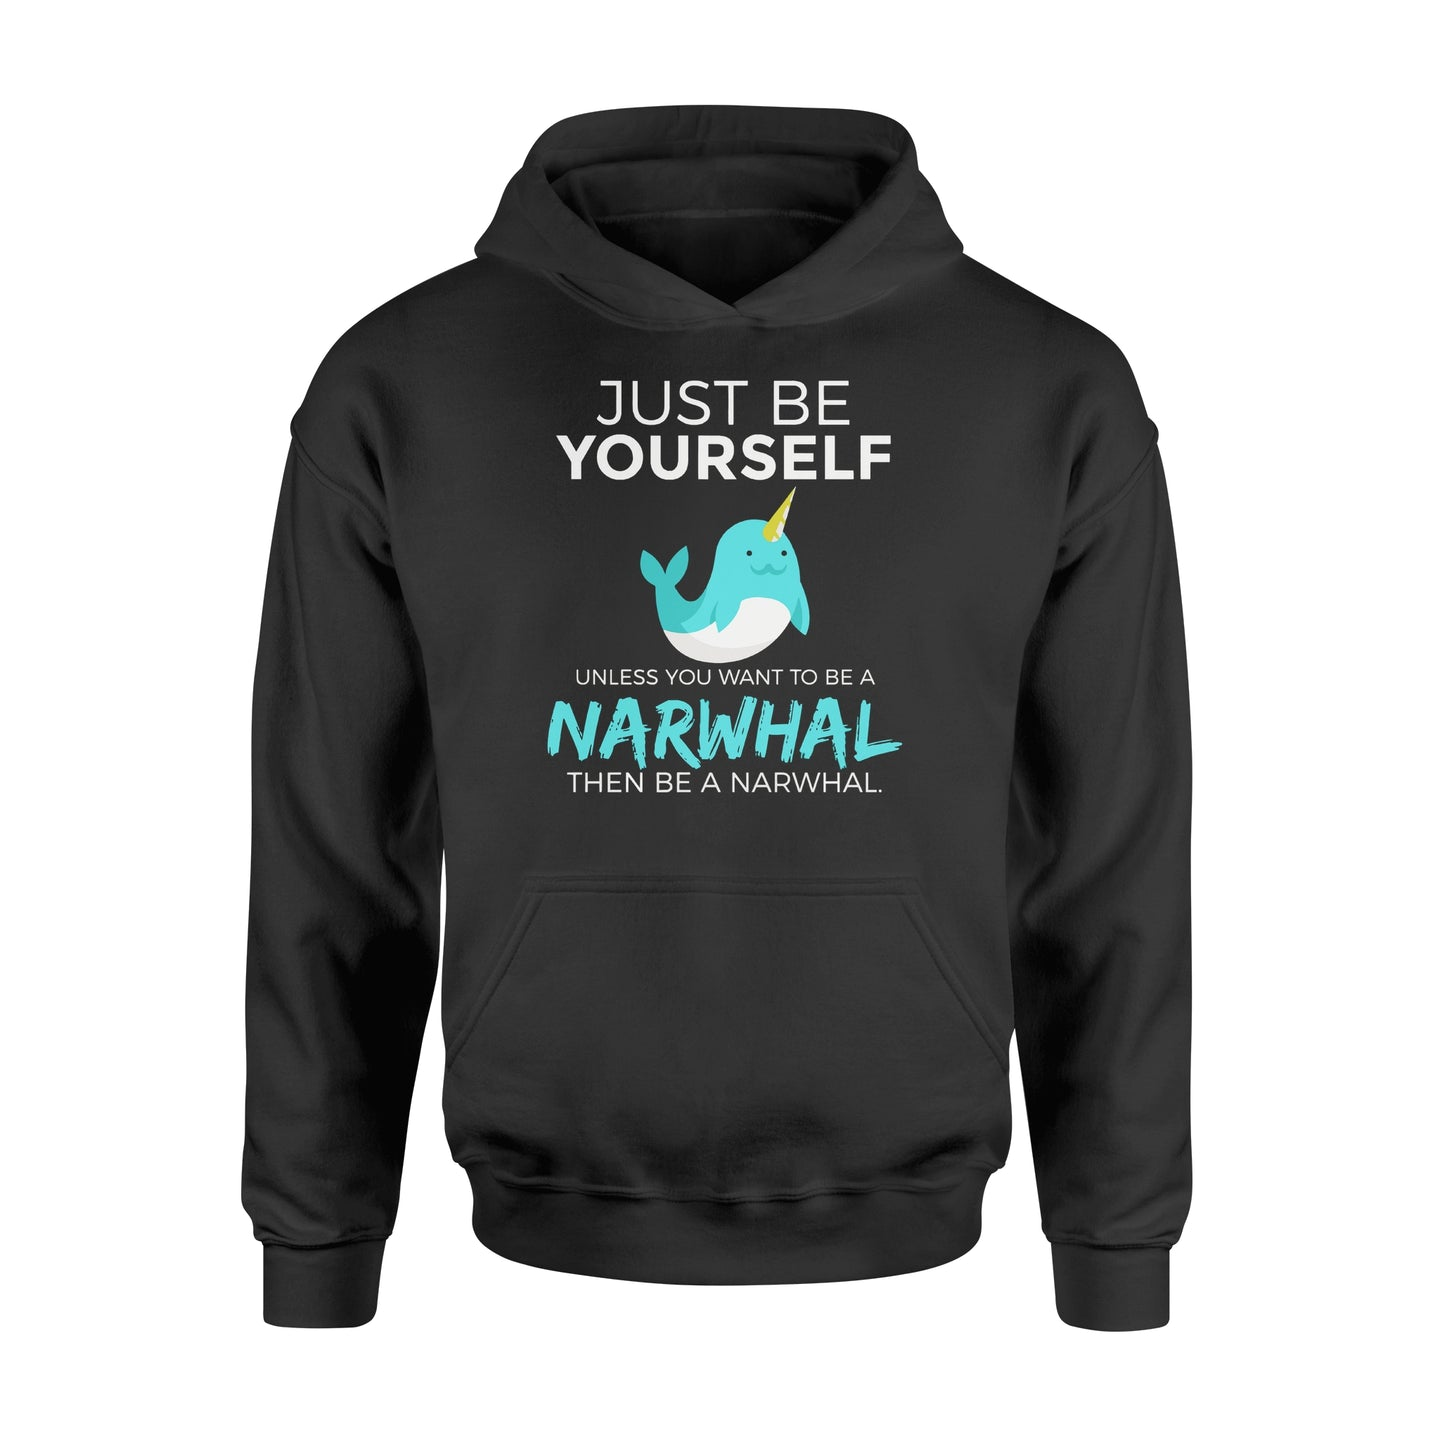 You Want To Be A Narwhal - Standard Hoodie